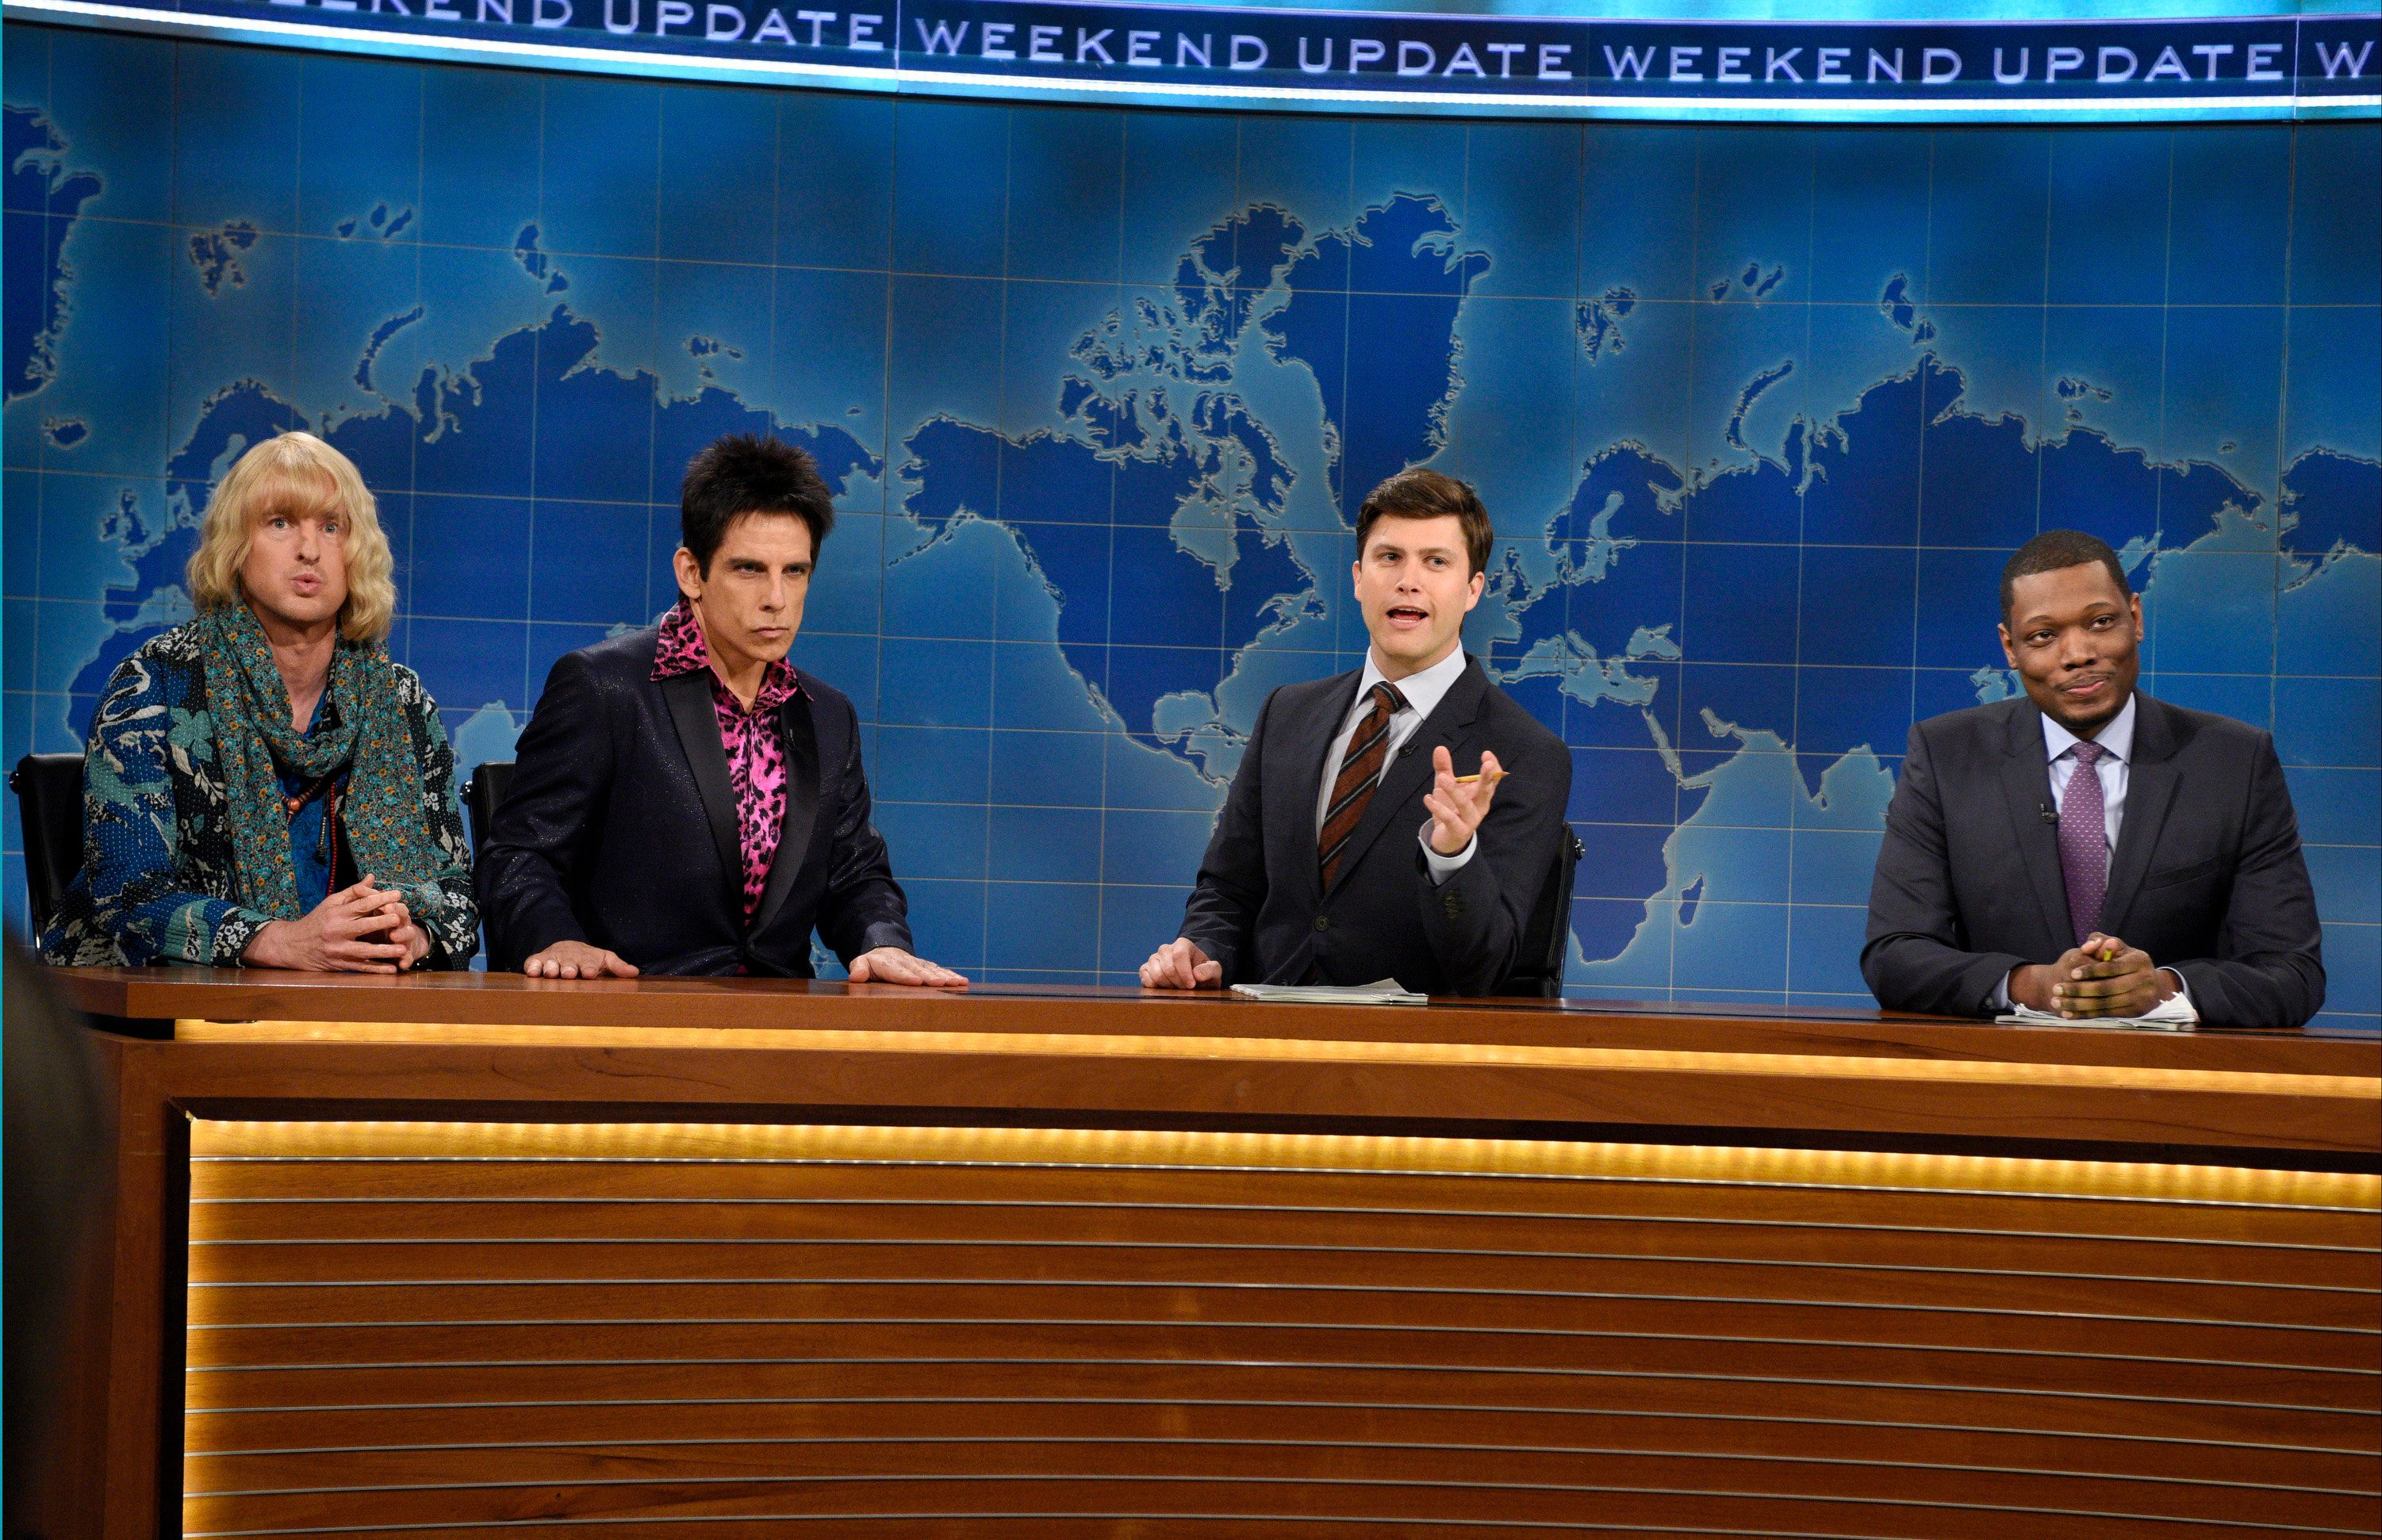 SNL's 'Weekend Update: Summer Edition' features Bill Hader as Scaramucci and more